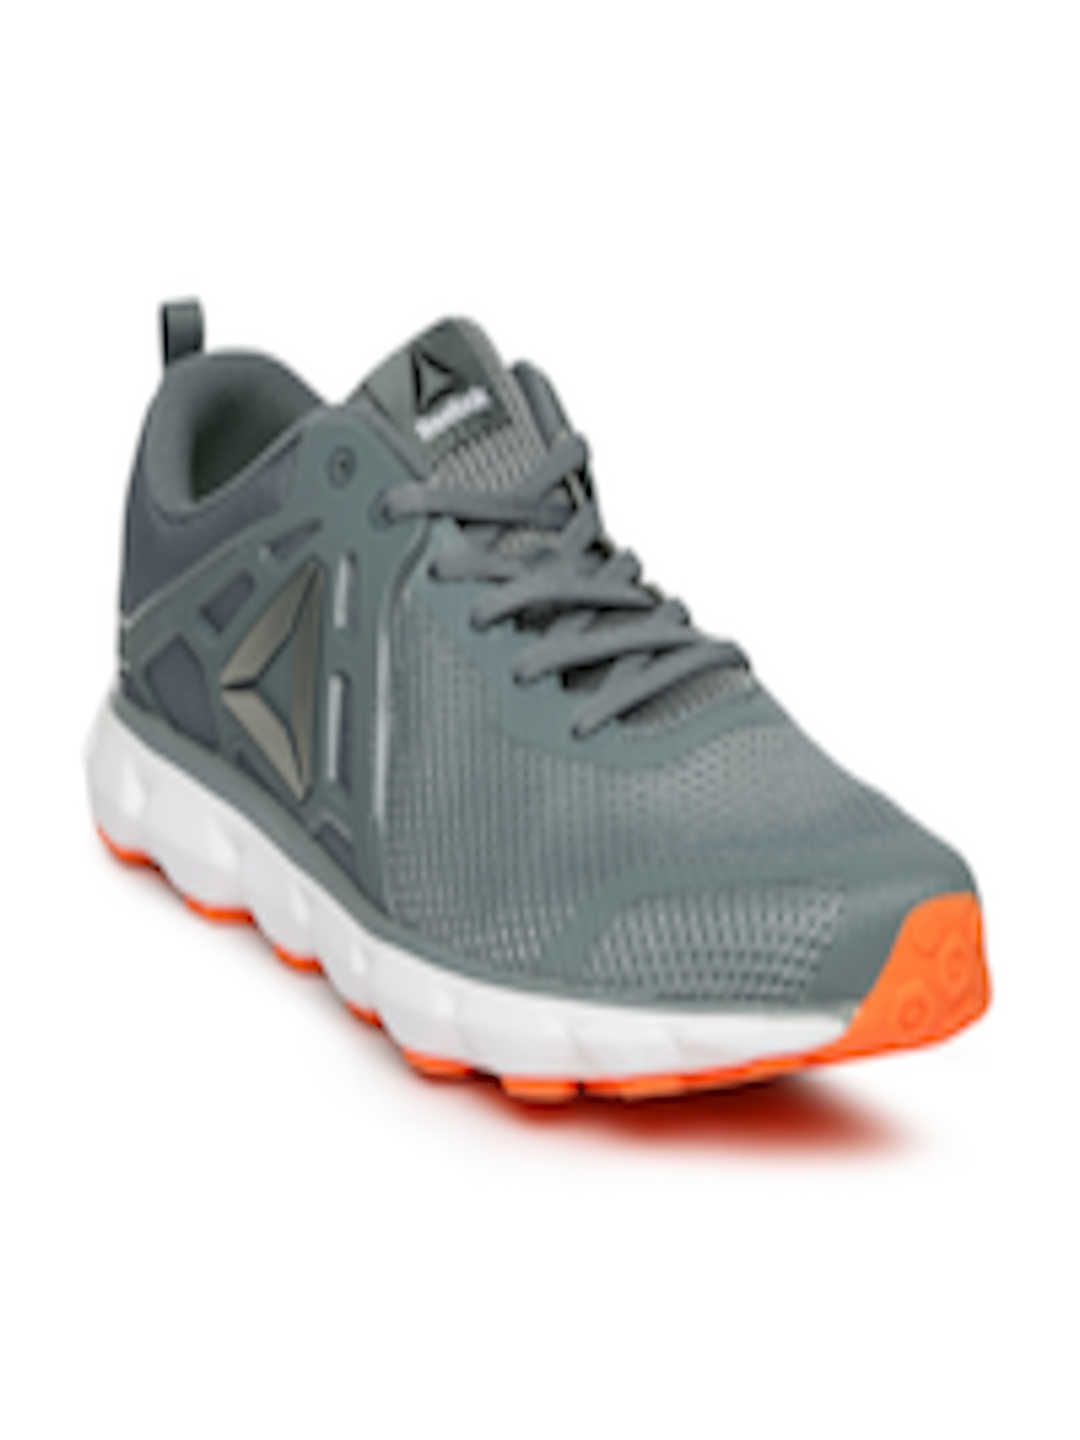 13034d2f55c1 Buy Reebok Men Grey HEXAFFECT RUN 5.0 MTM Running Shoes - Sports Shoes for  Men 1889402